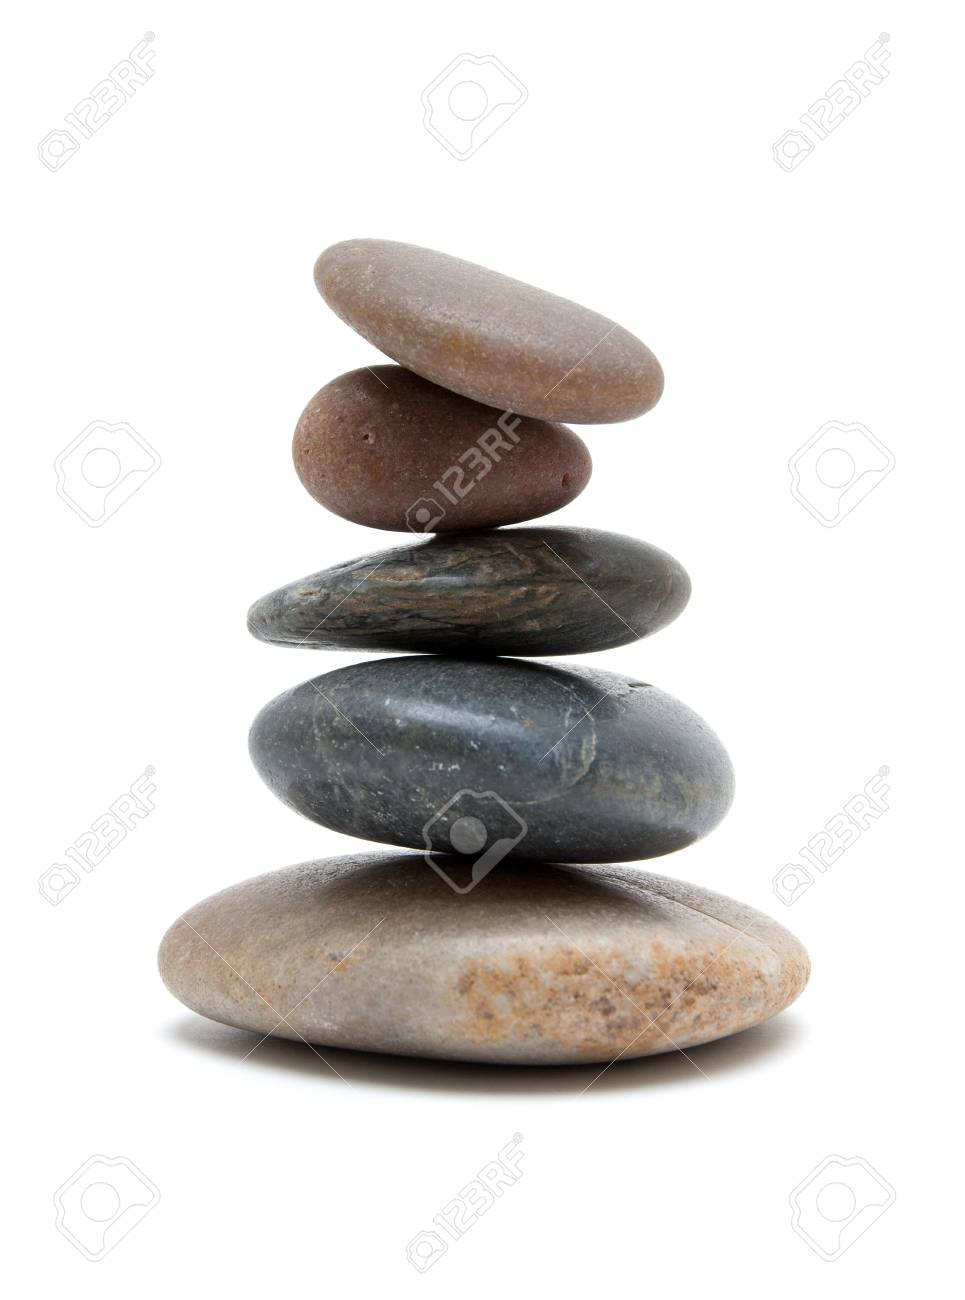 Stones in balanced pile Stock Photo - 18891289